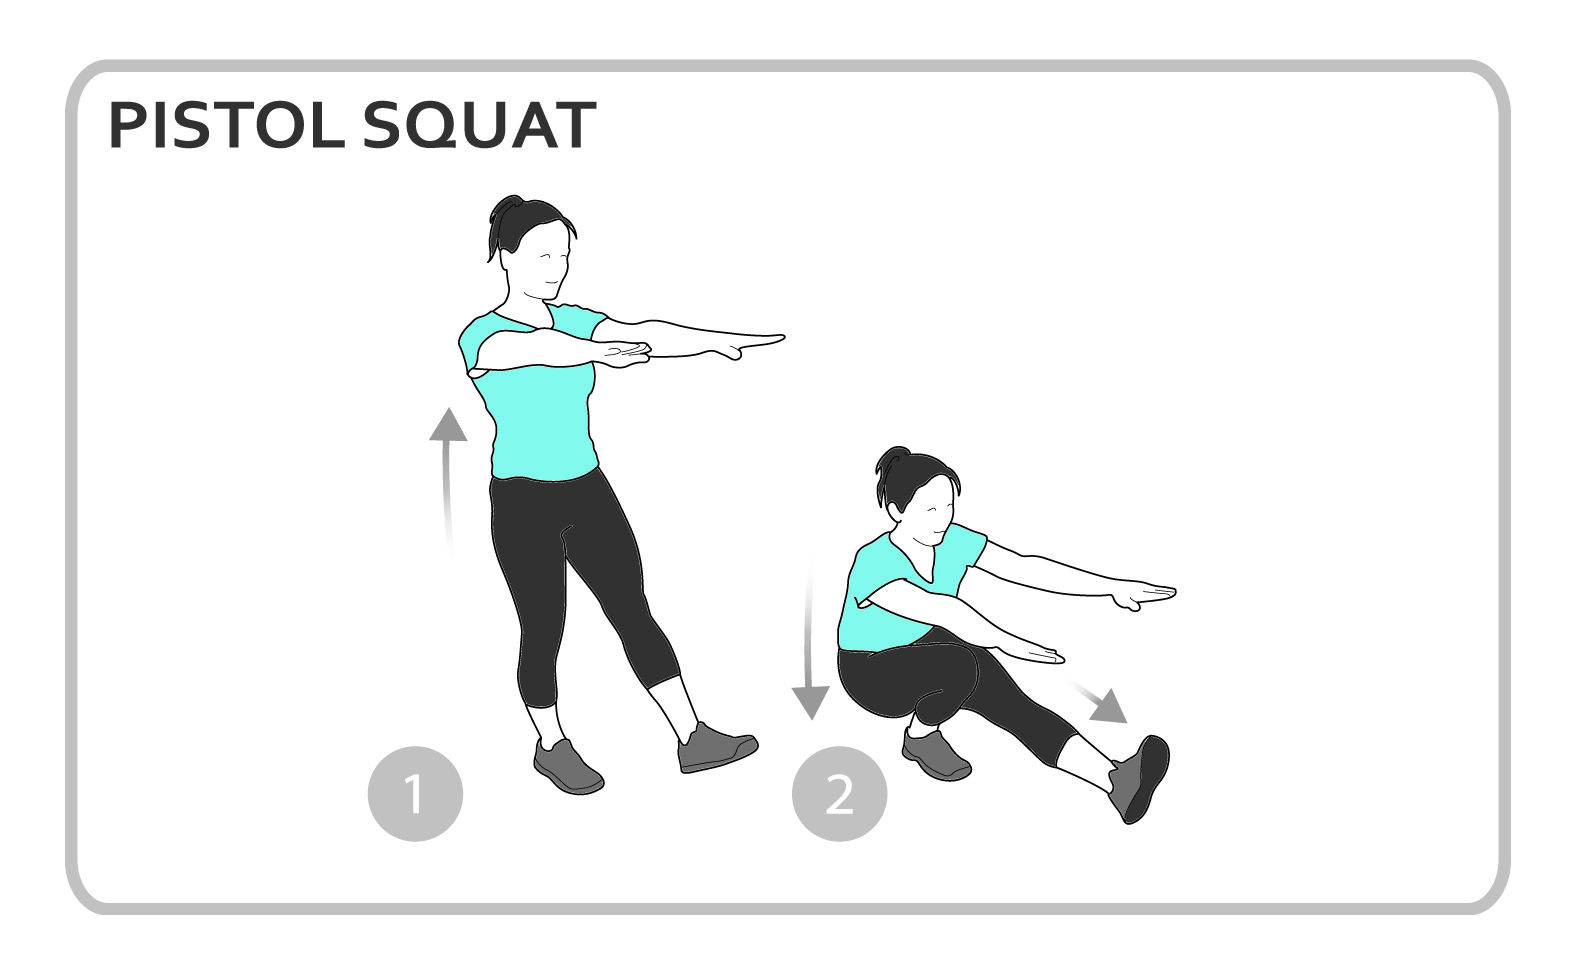 pistol squat exercise diagram lower body personal fitness workout [ 1575 x 975 Pixel ]